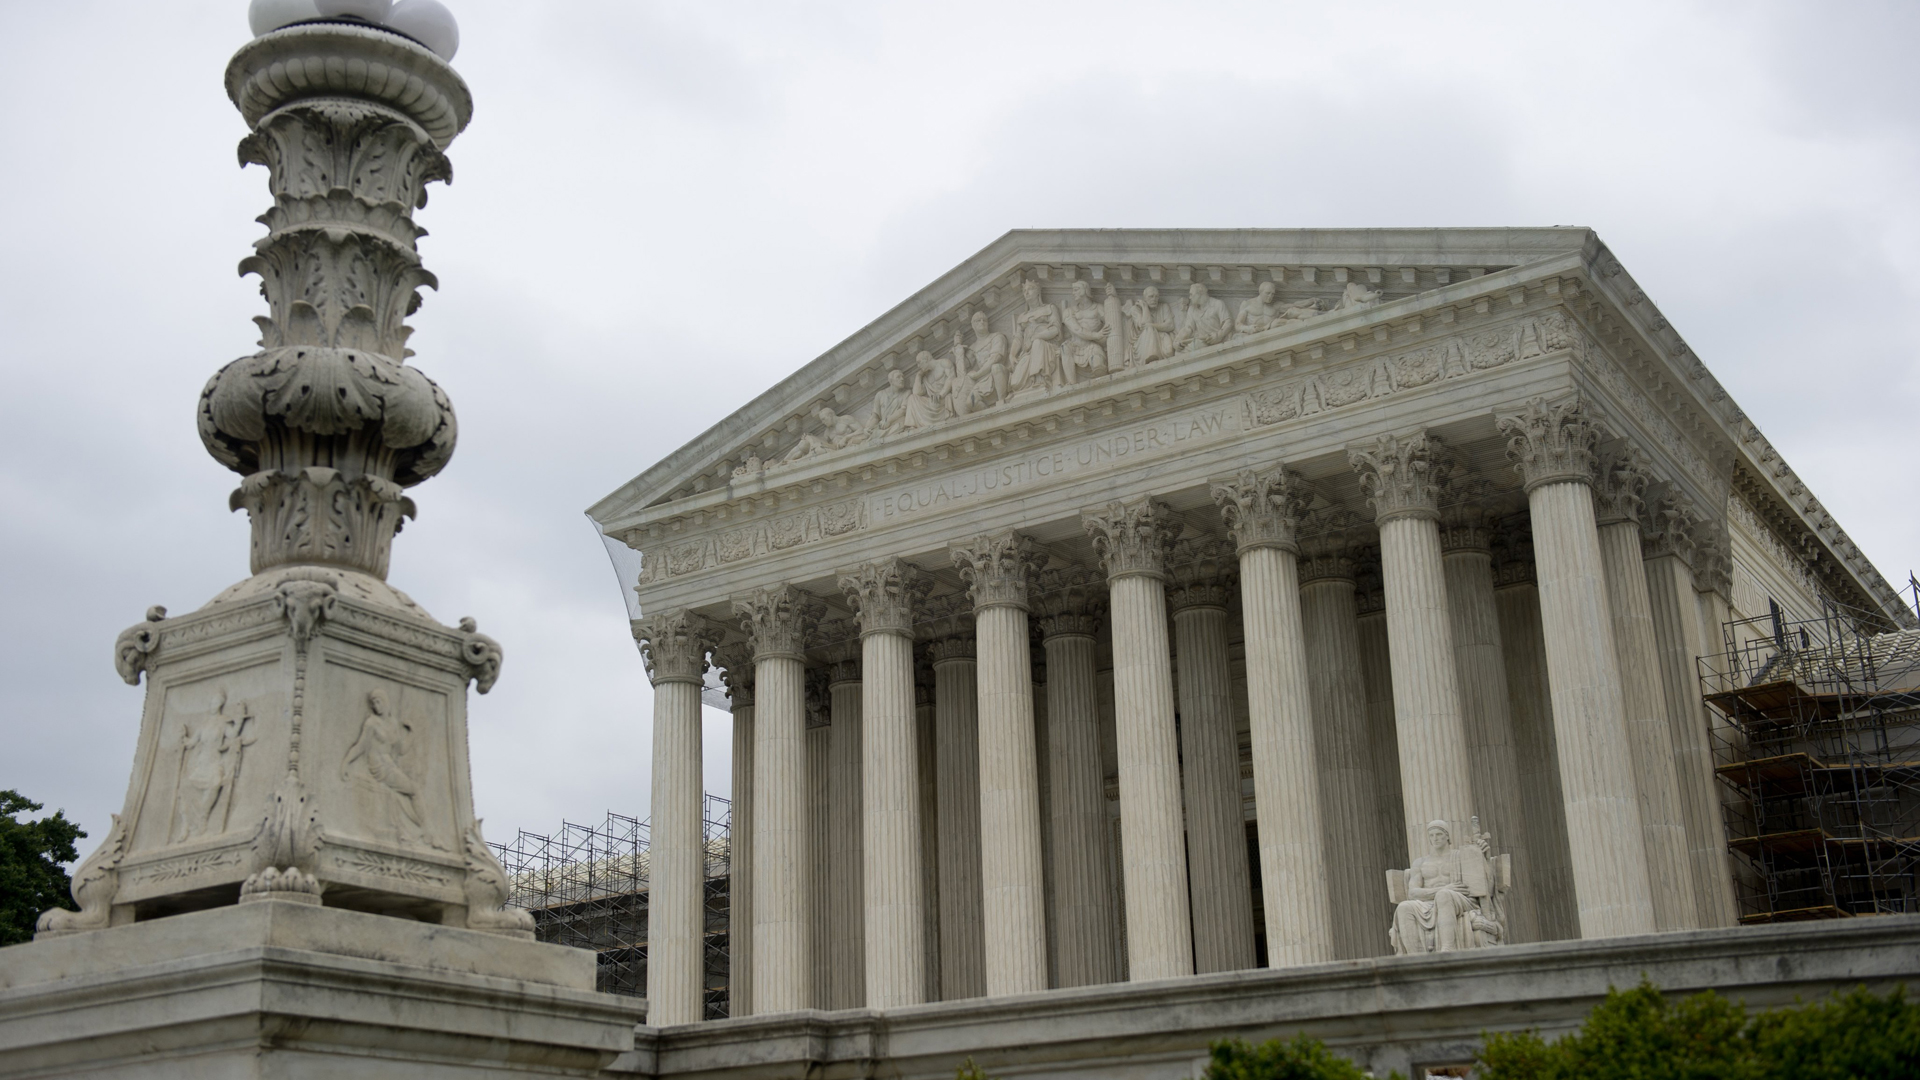 The U.S. Supreme Court is seen in Washington, DC, June 18, 2012. (Credit: SAUL LOEB/AFP/GettyImages)